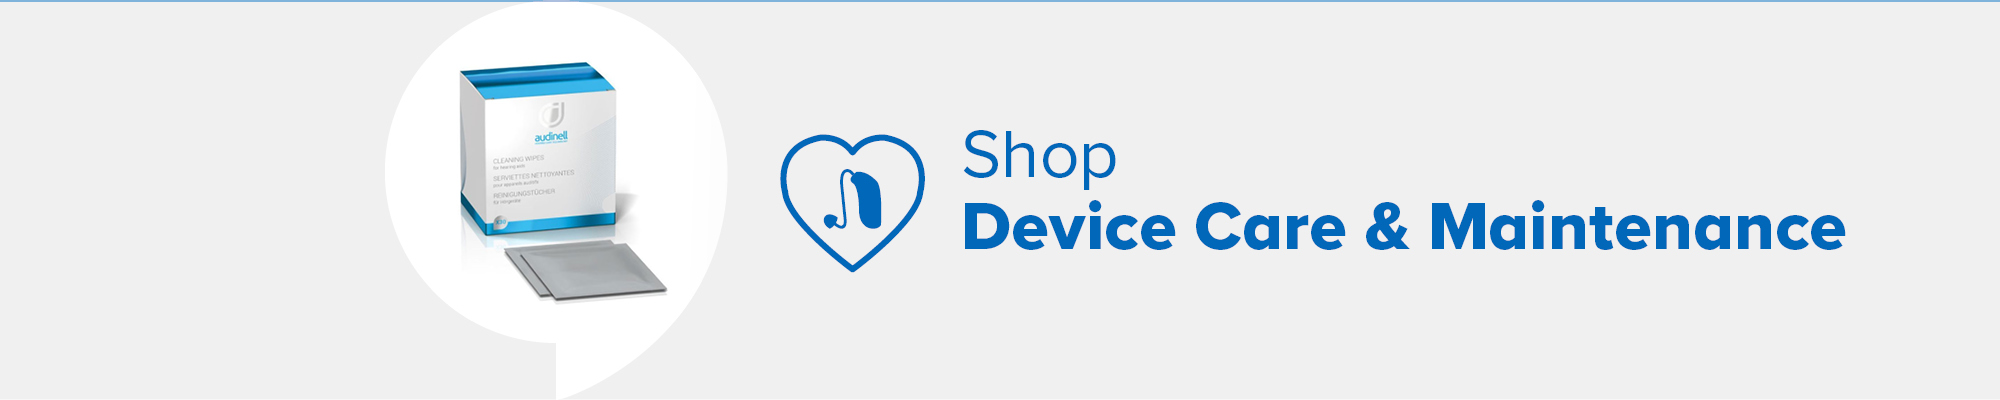 hl-shop-category-device-care-and-maintenance